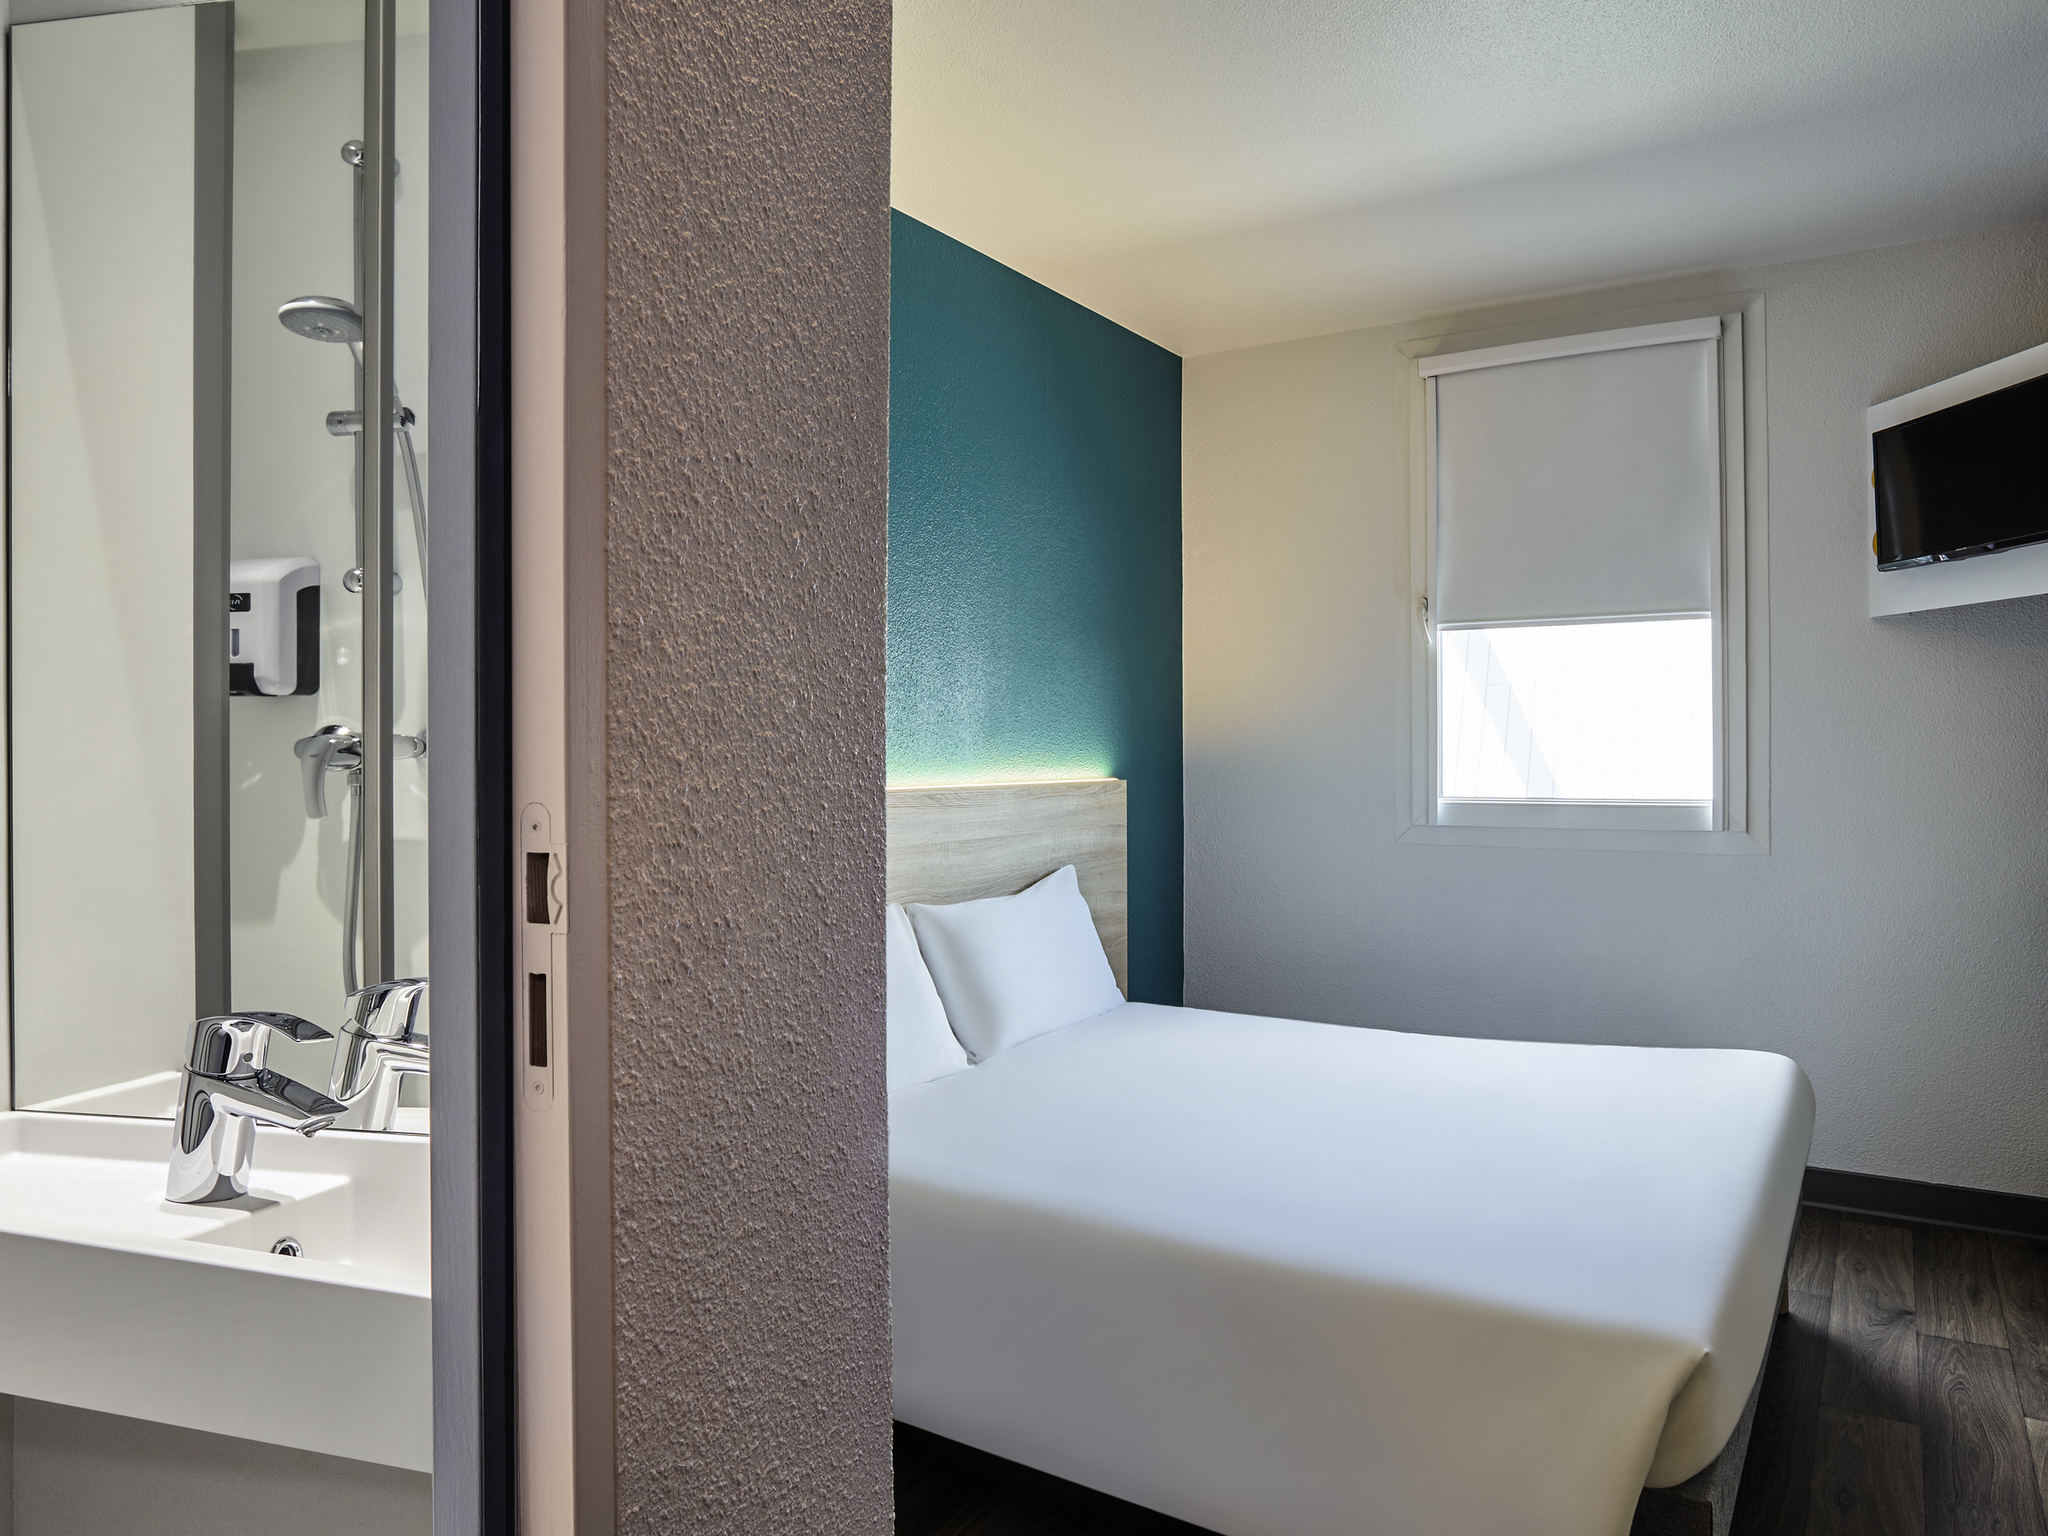 Hotel – hotelF1 Toulouse l'Union